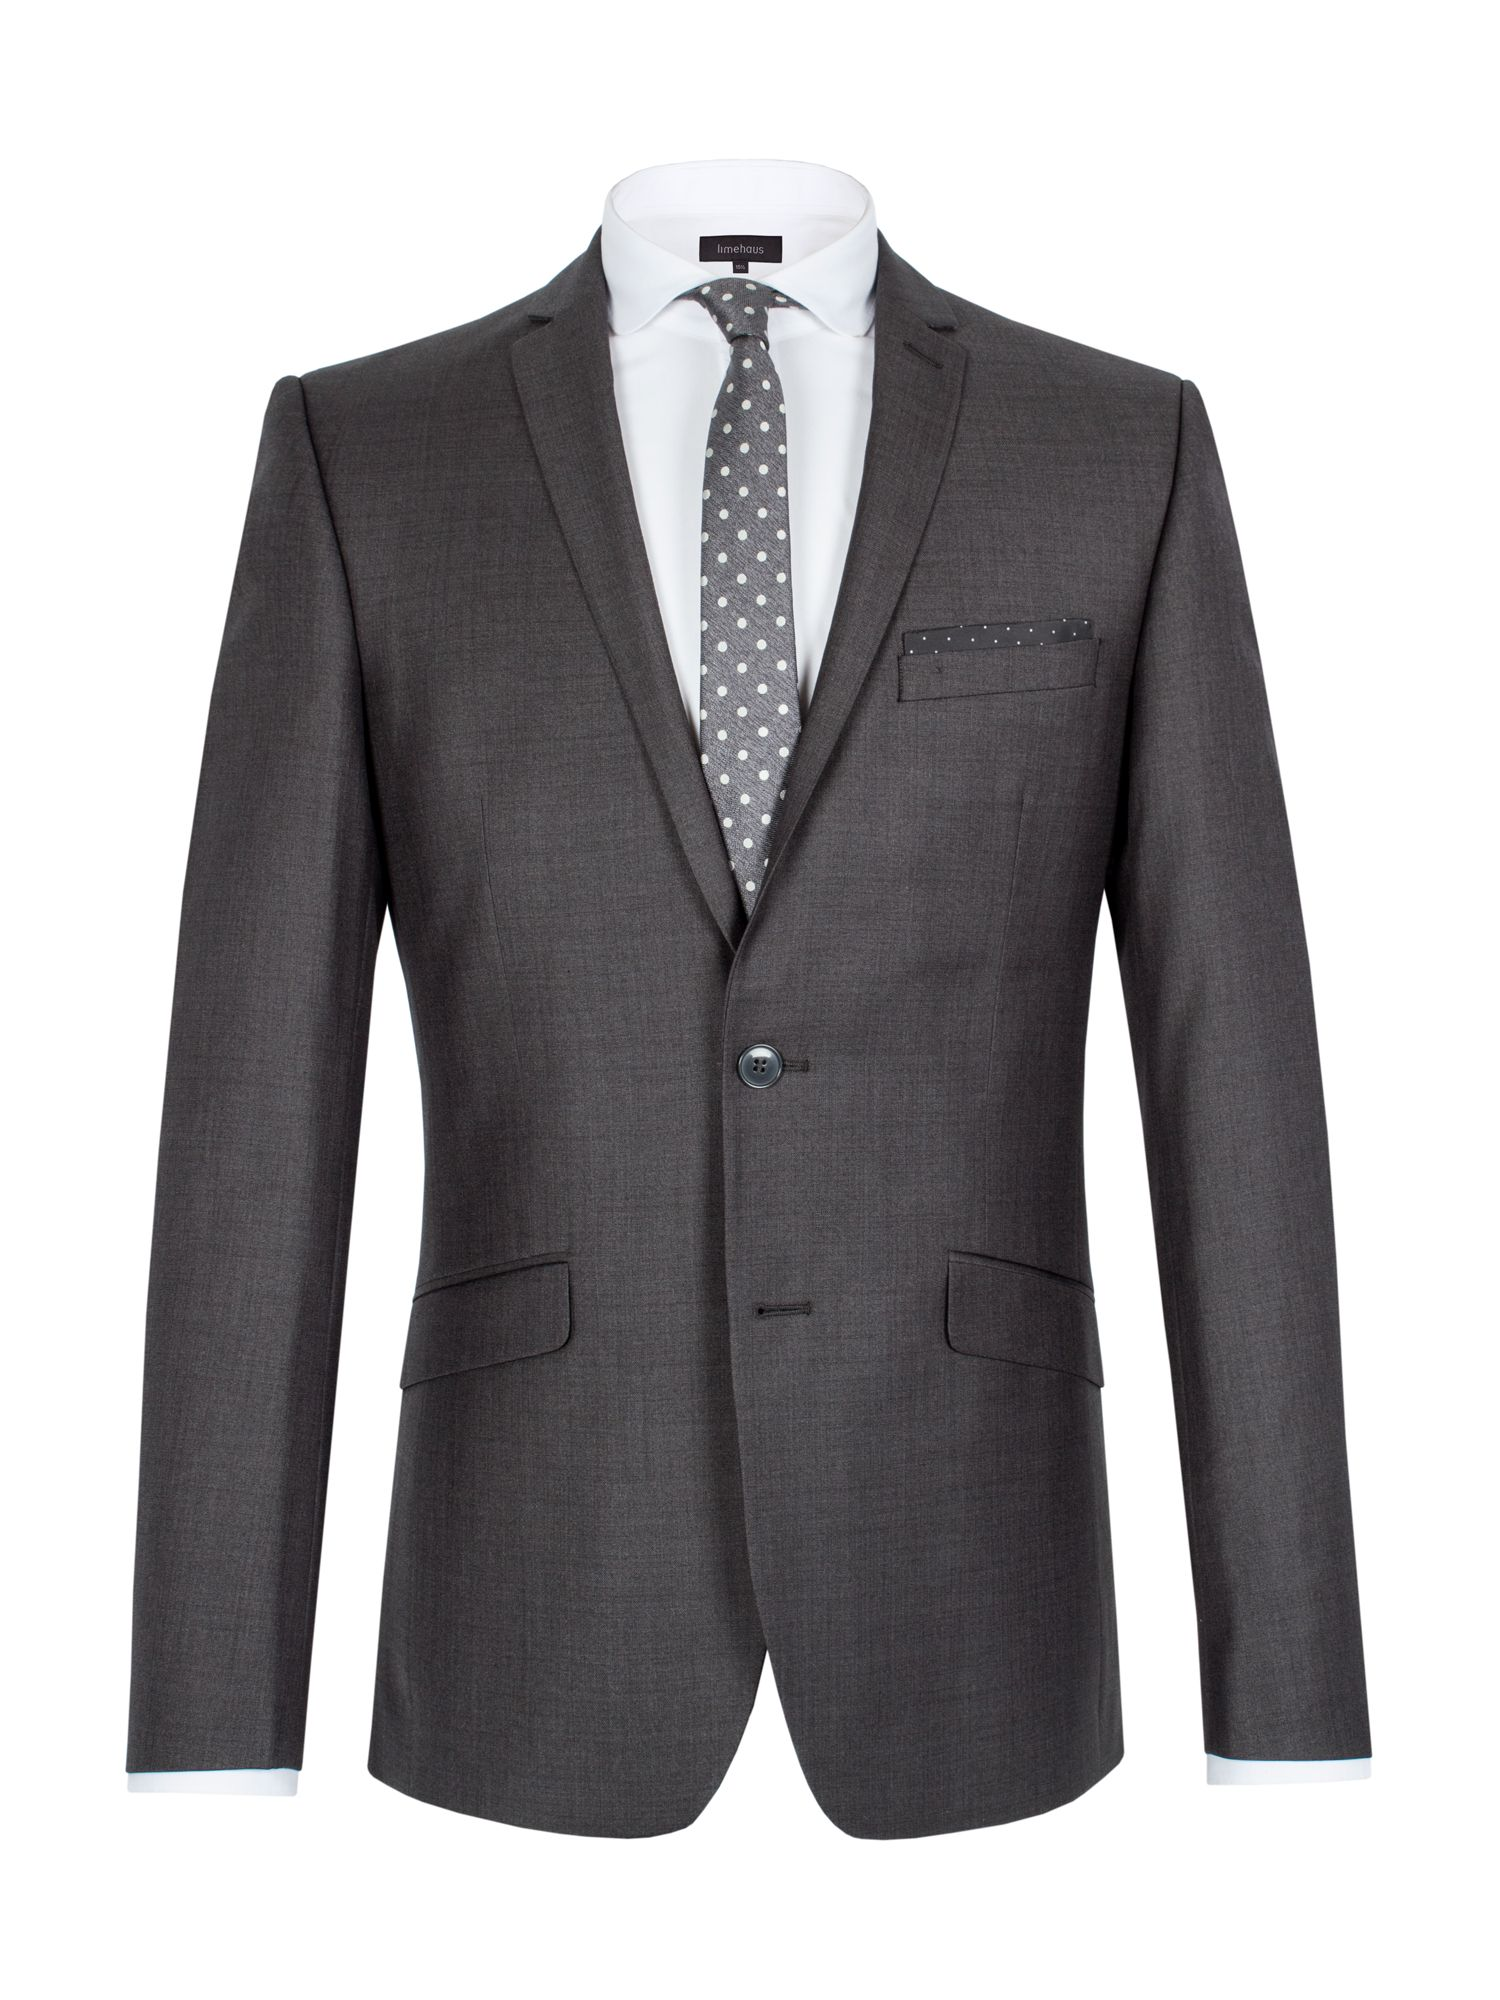 Limehaus Men's Limehaus Graphite twill single breasted suit jacket, Grey